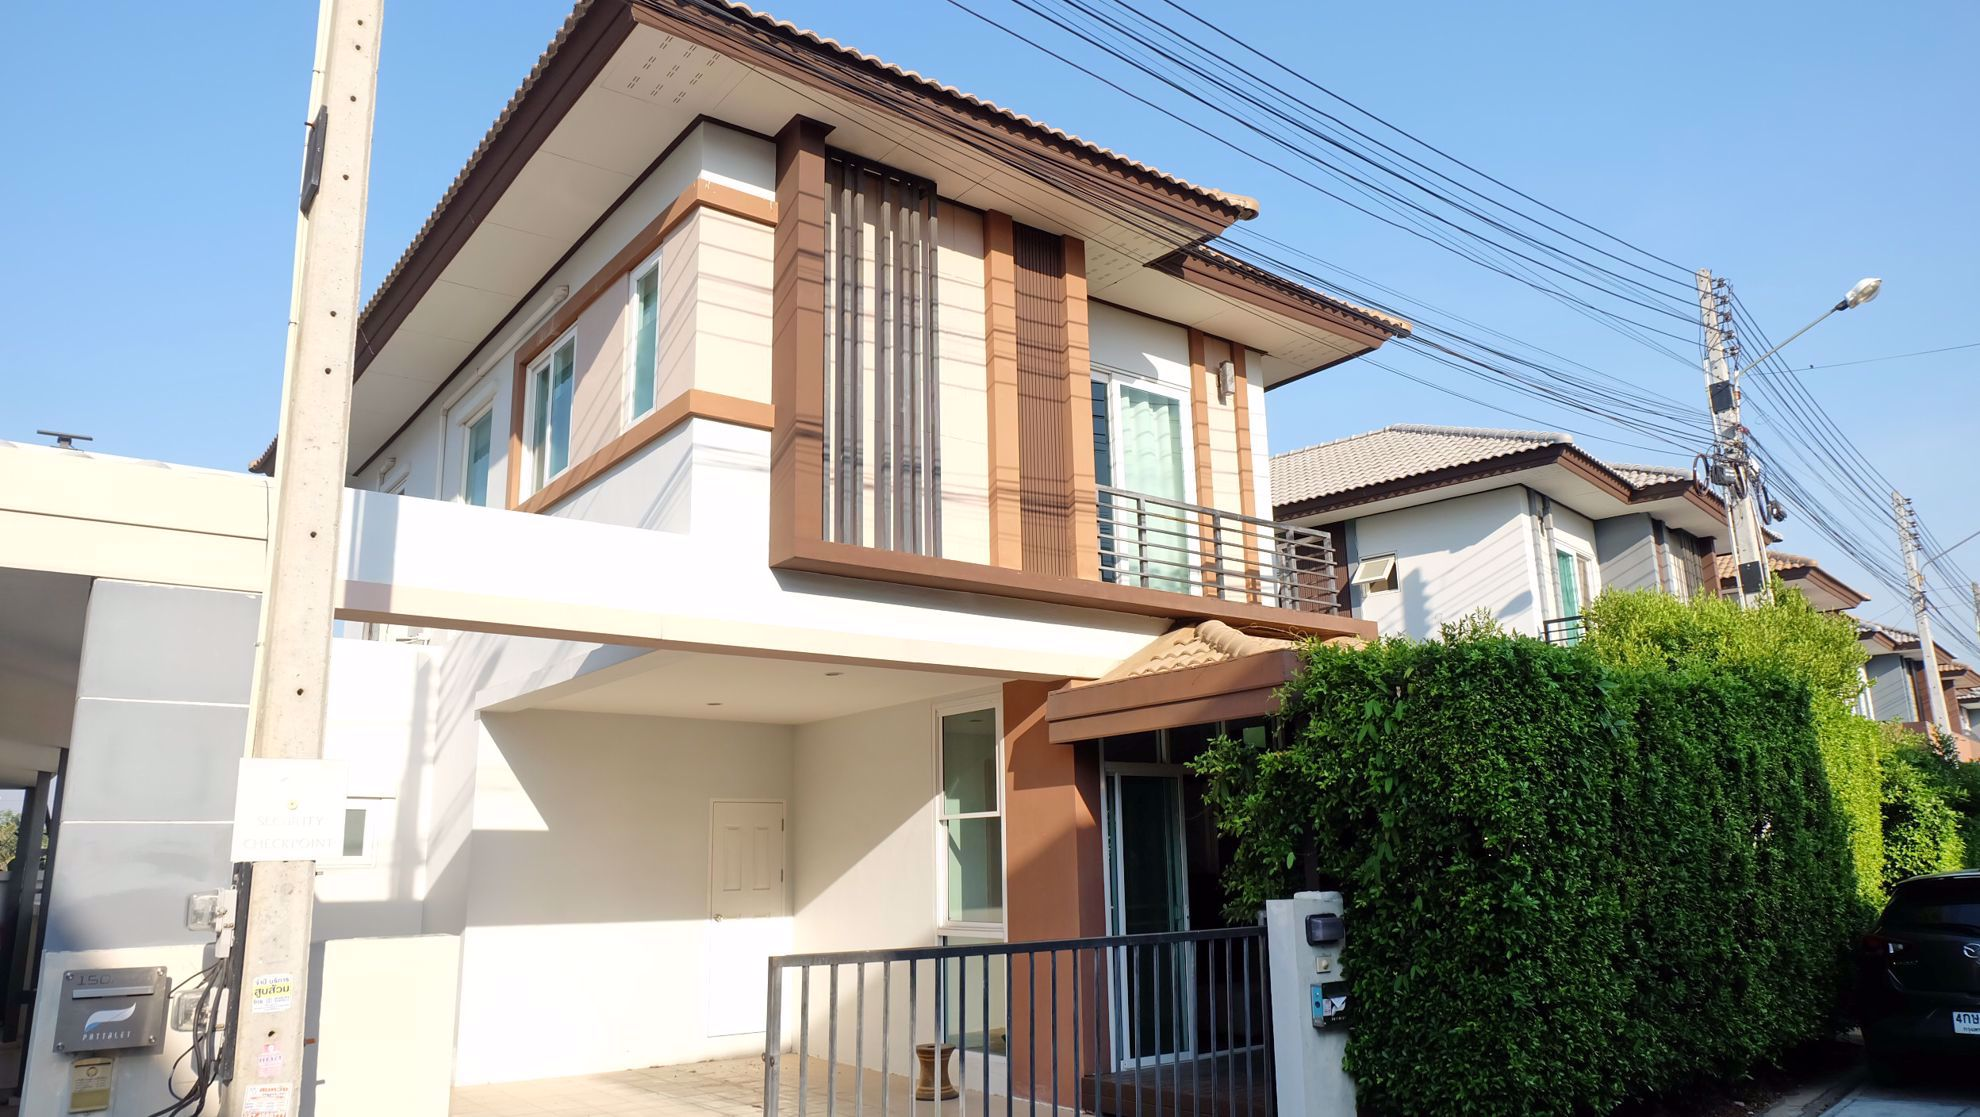 3 Bedroom House in Patta Let in East Pattaya H002050